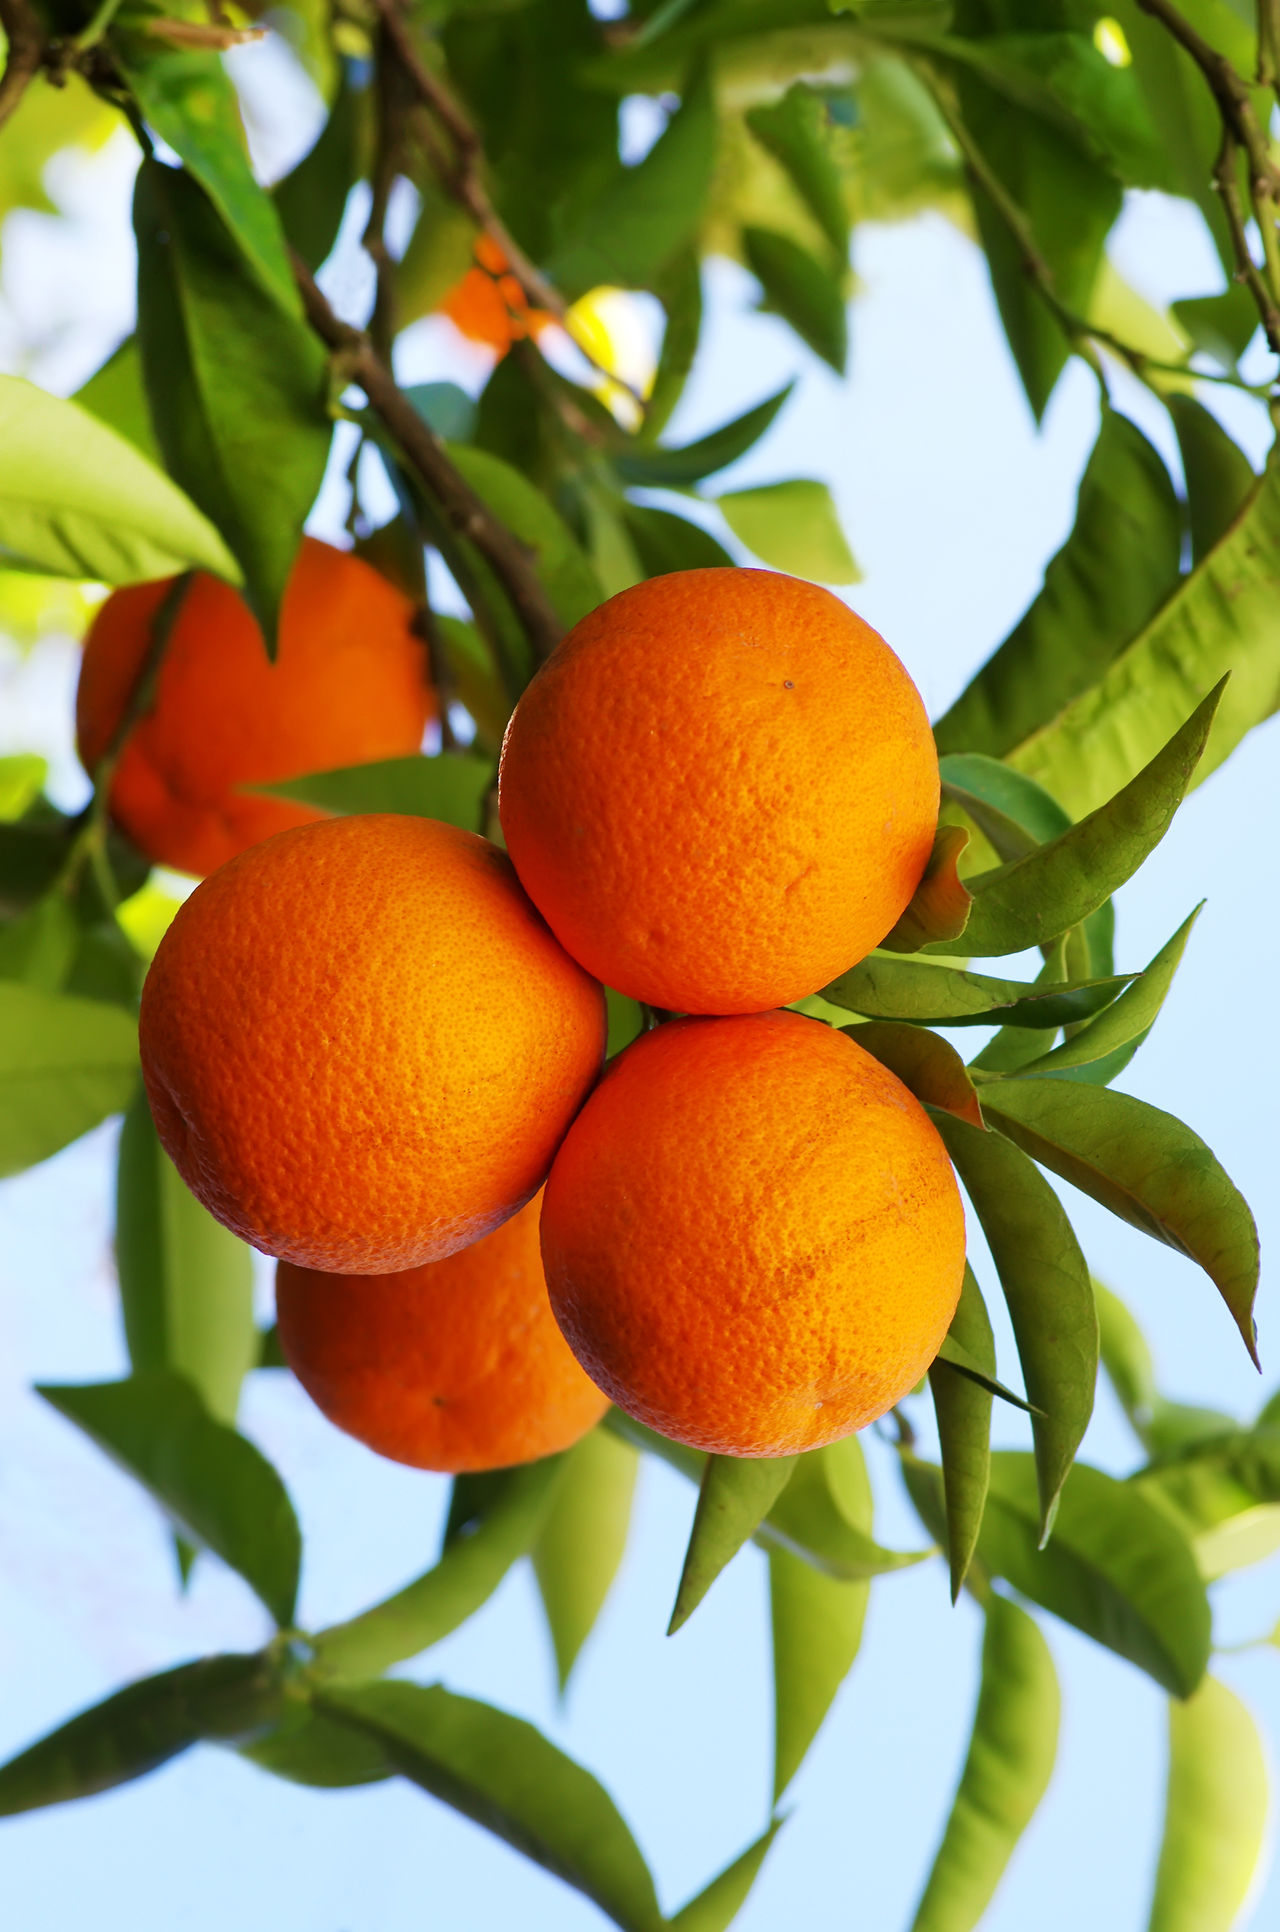 ripe oranges hanging on tree Hanging Around Agriculture Branch Citrus Fruit Close-up Food And Drink Fruit Green Color Growth Leaf Nature Orange - Fruit Orange Color Orange Tree